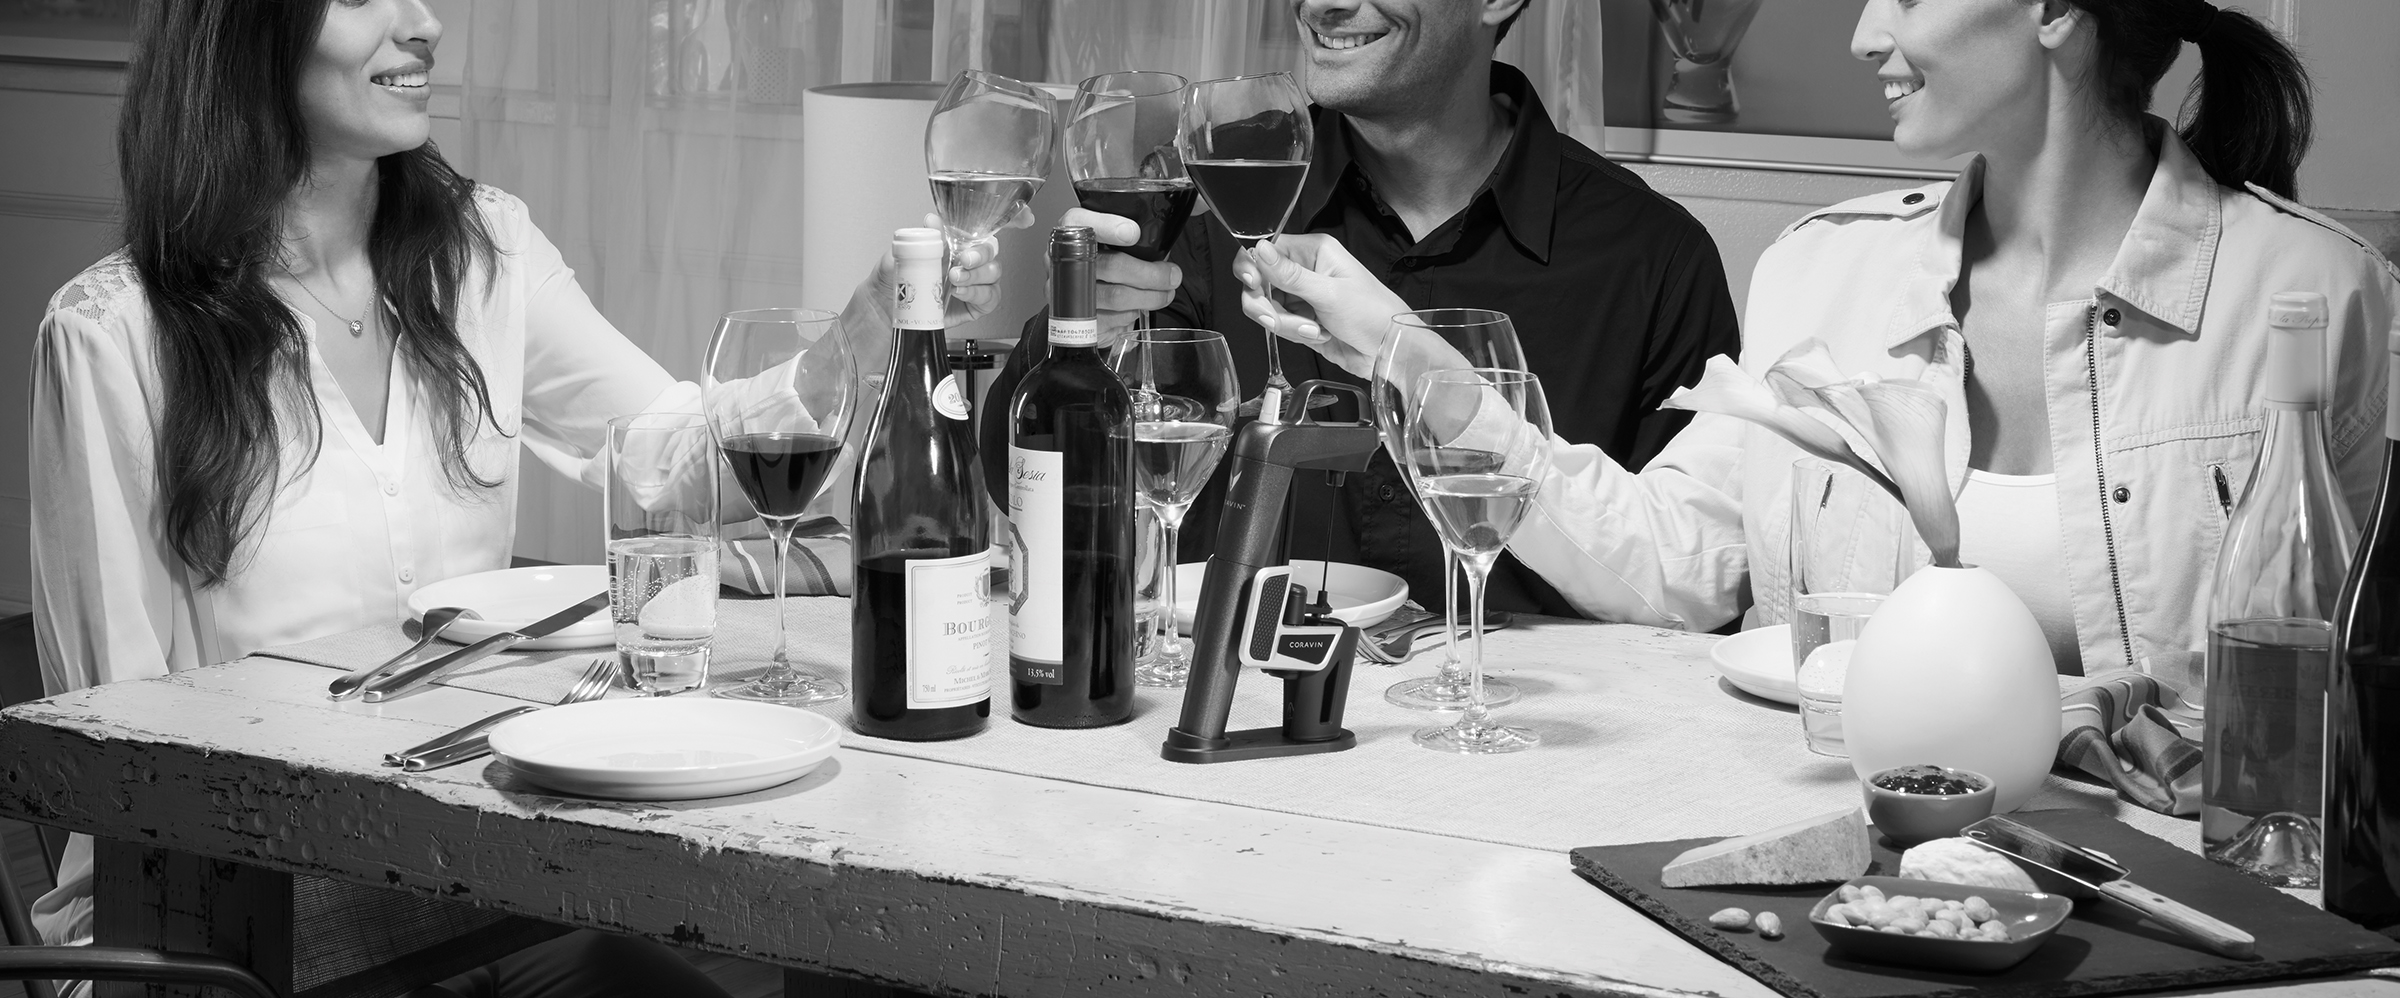 The Coravin system means you can share expensive wines with friends without 'wasting' the whole bottle on them